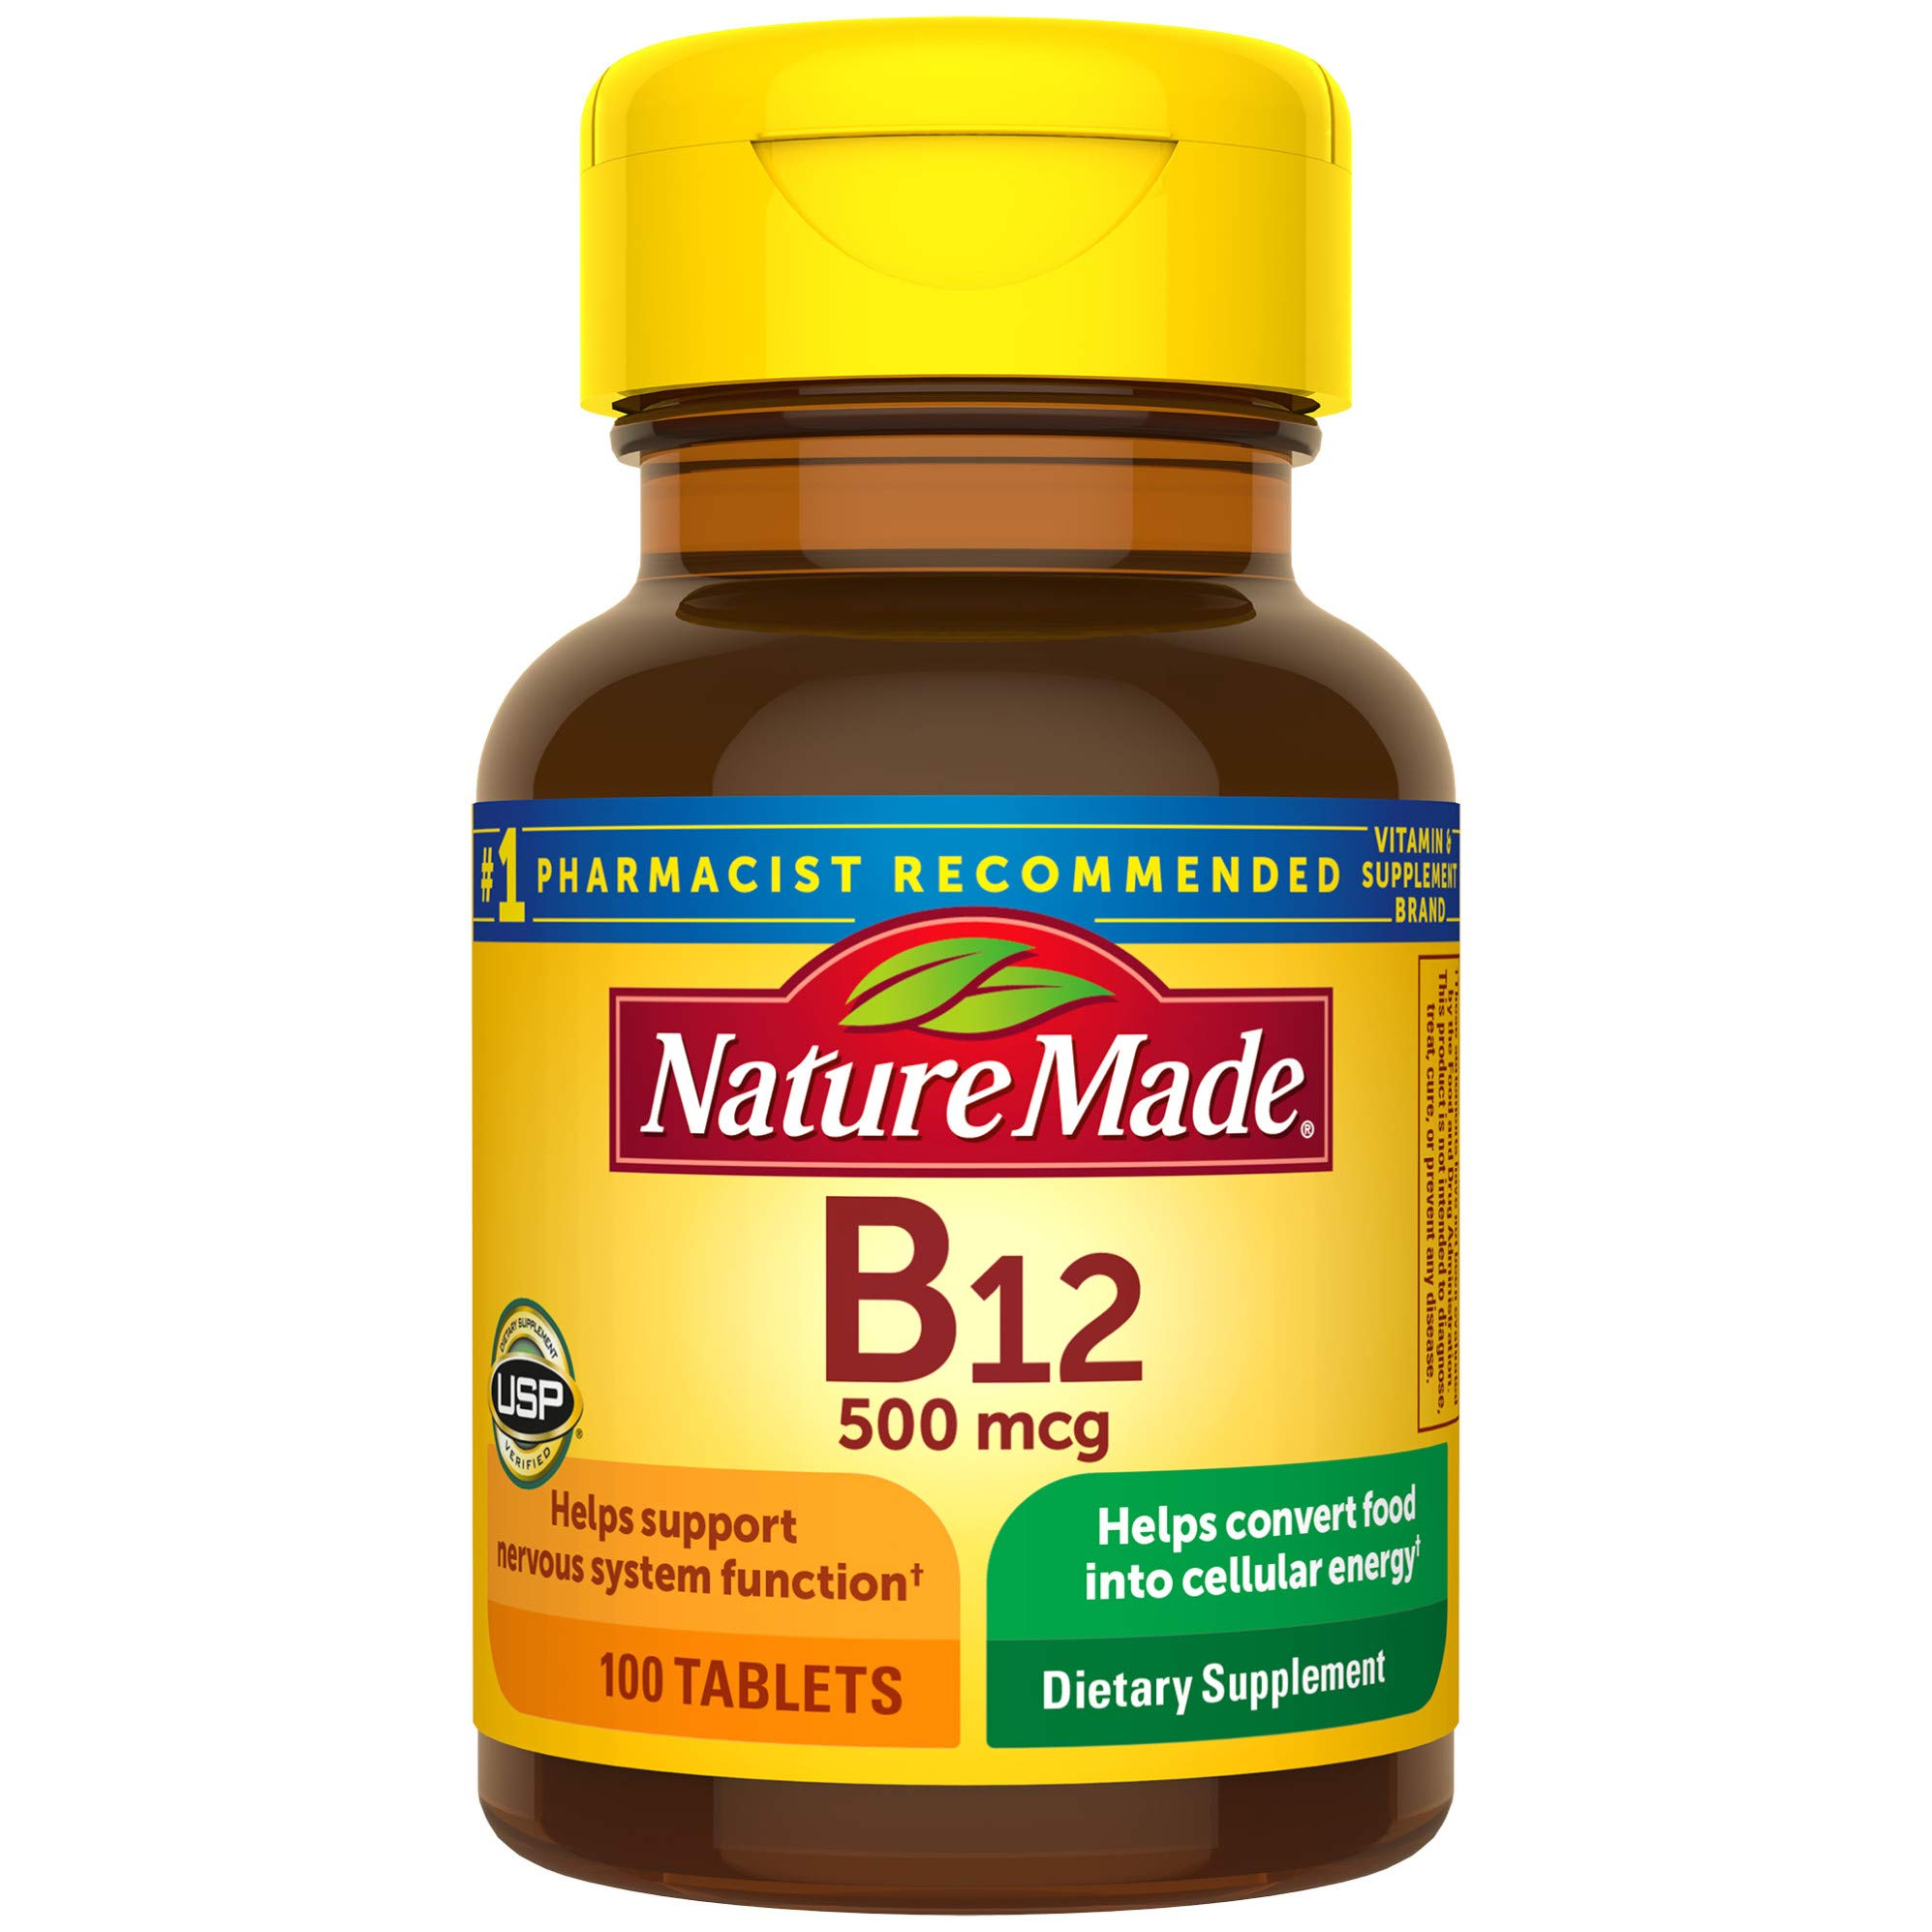 Nature Made Vitamin B12 500 mcg Tablets, 100 Count for Metabolic Health